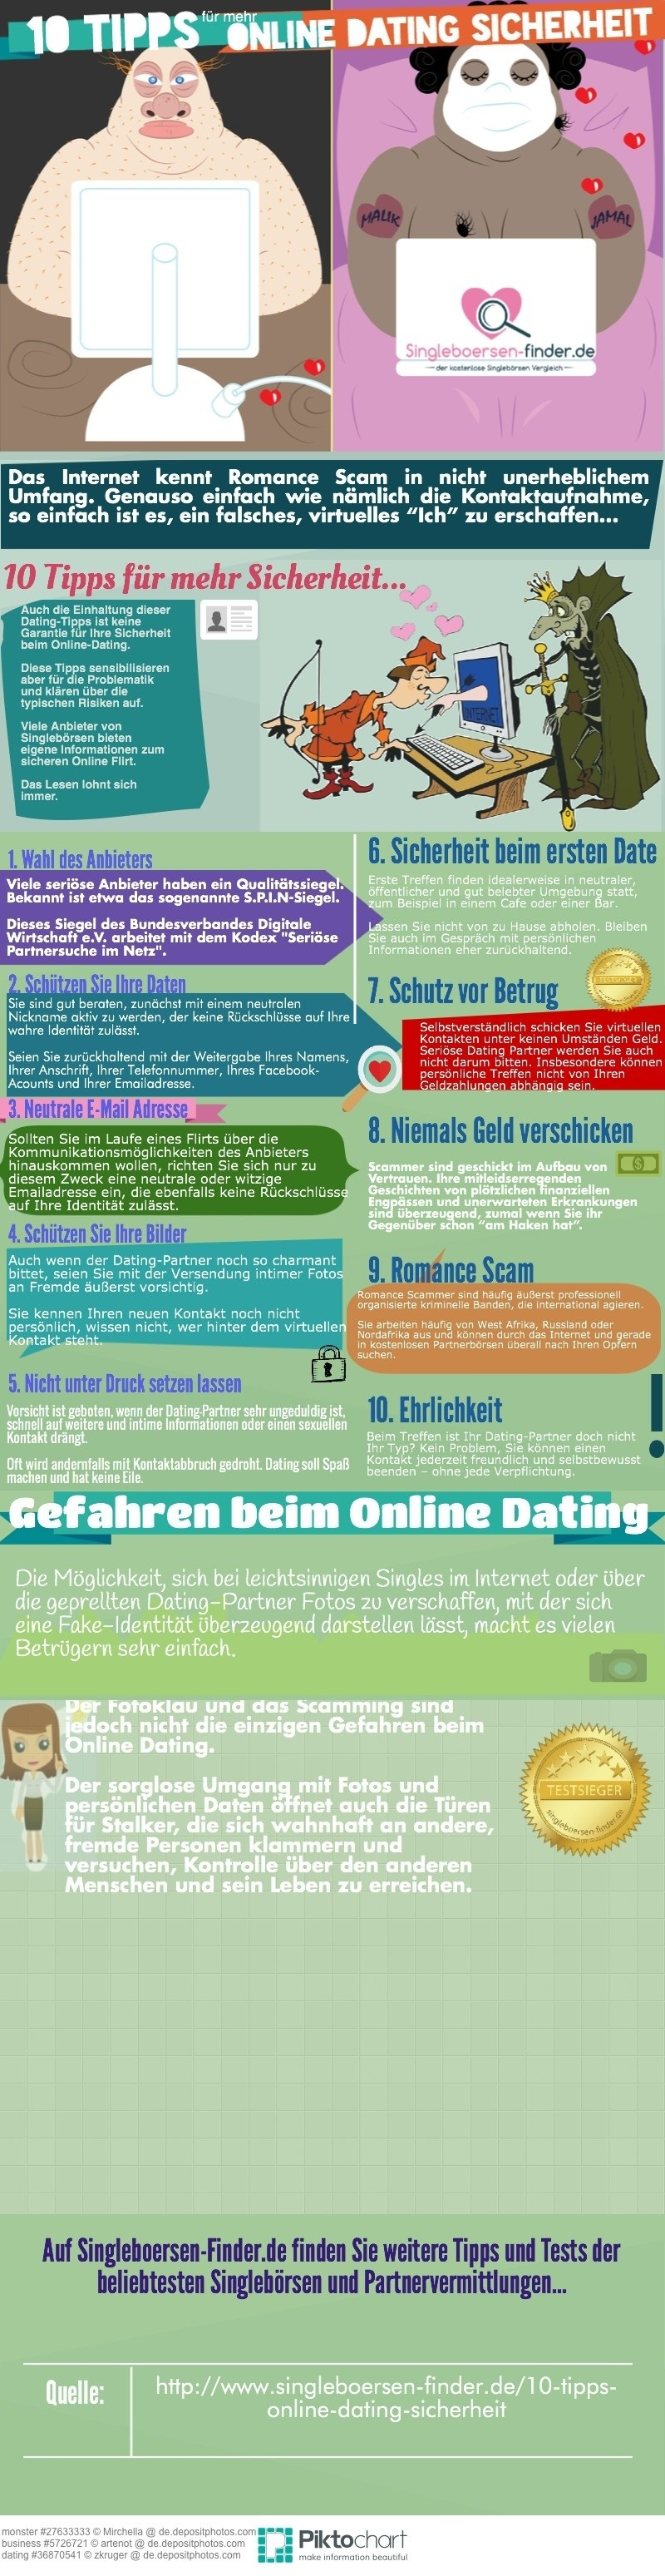 Sichere online-dating-sites